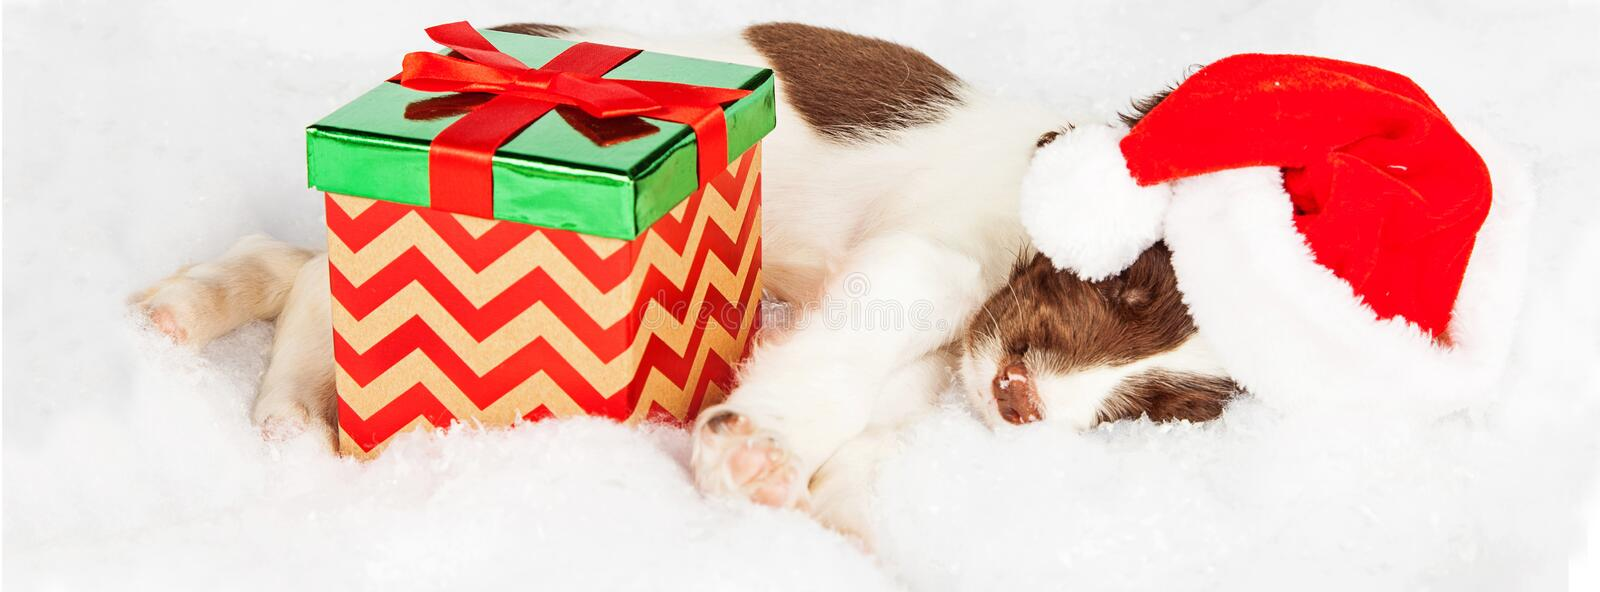 Springer Spaniel Puppy Wearing Santa Hat While Sleeping By Gifts royalty free stock photo